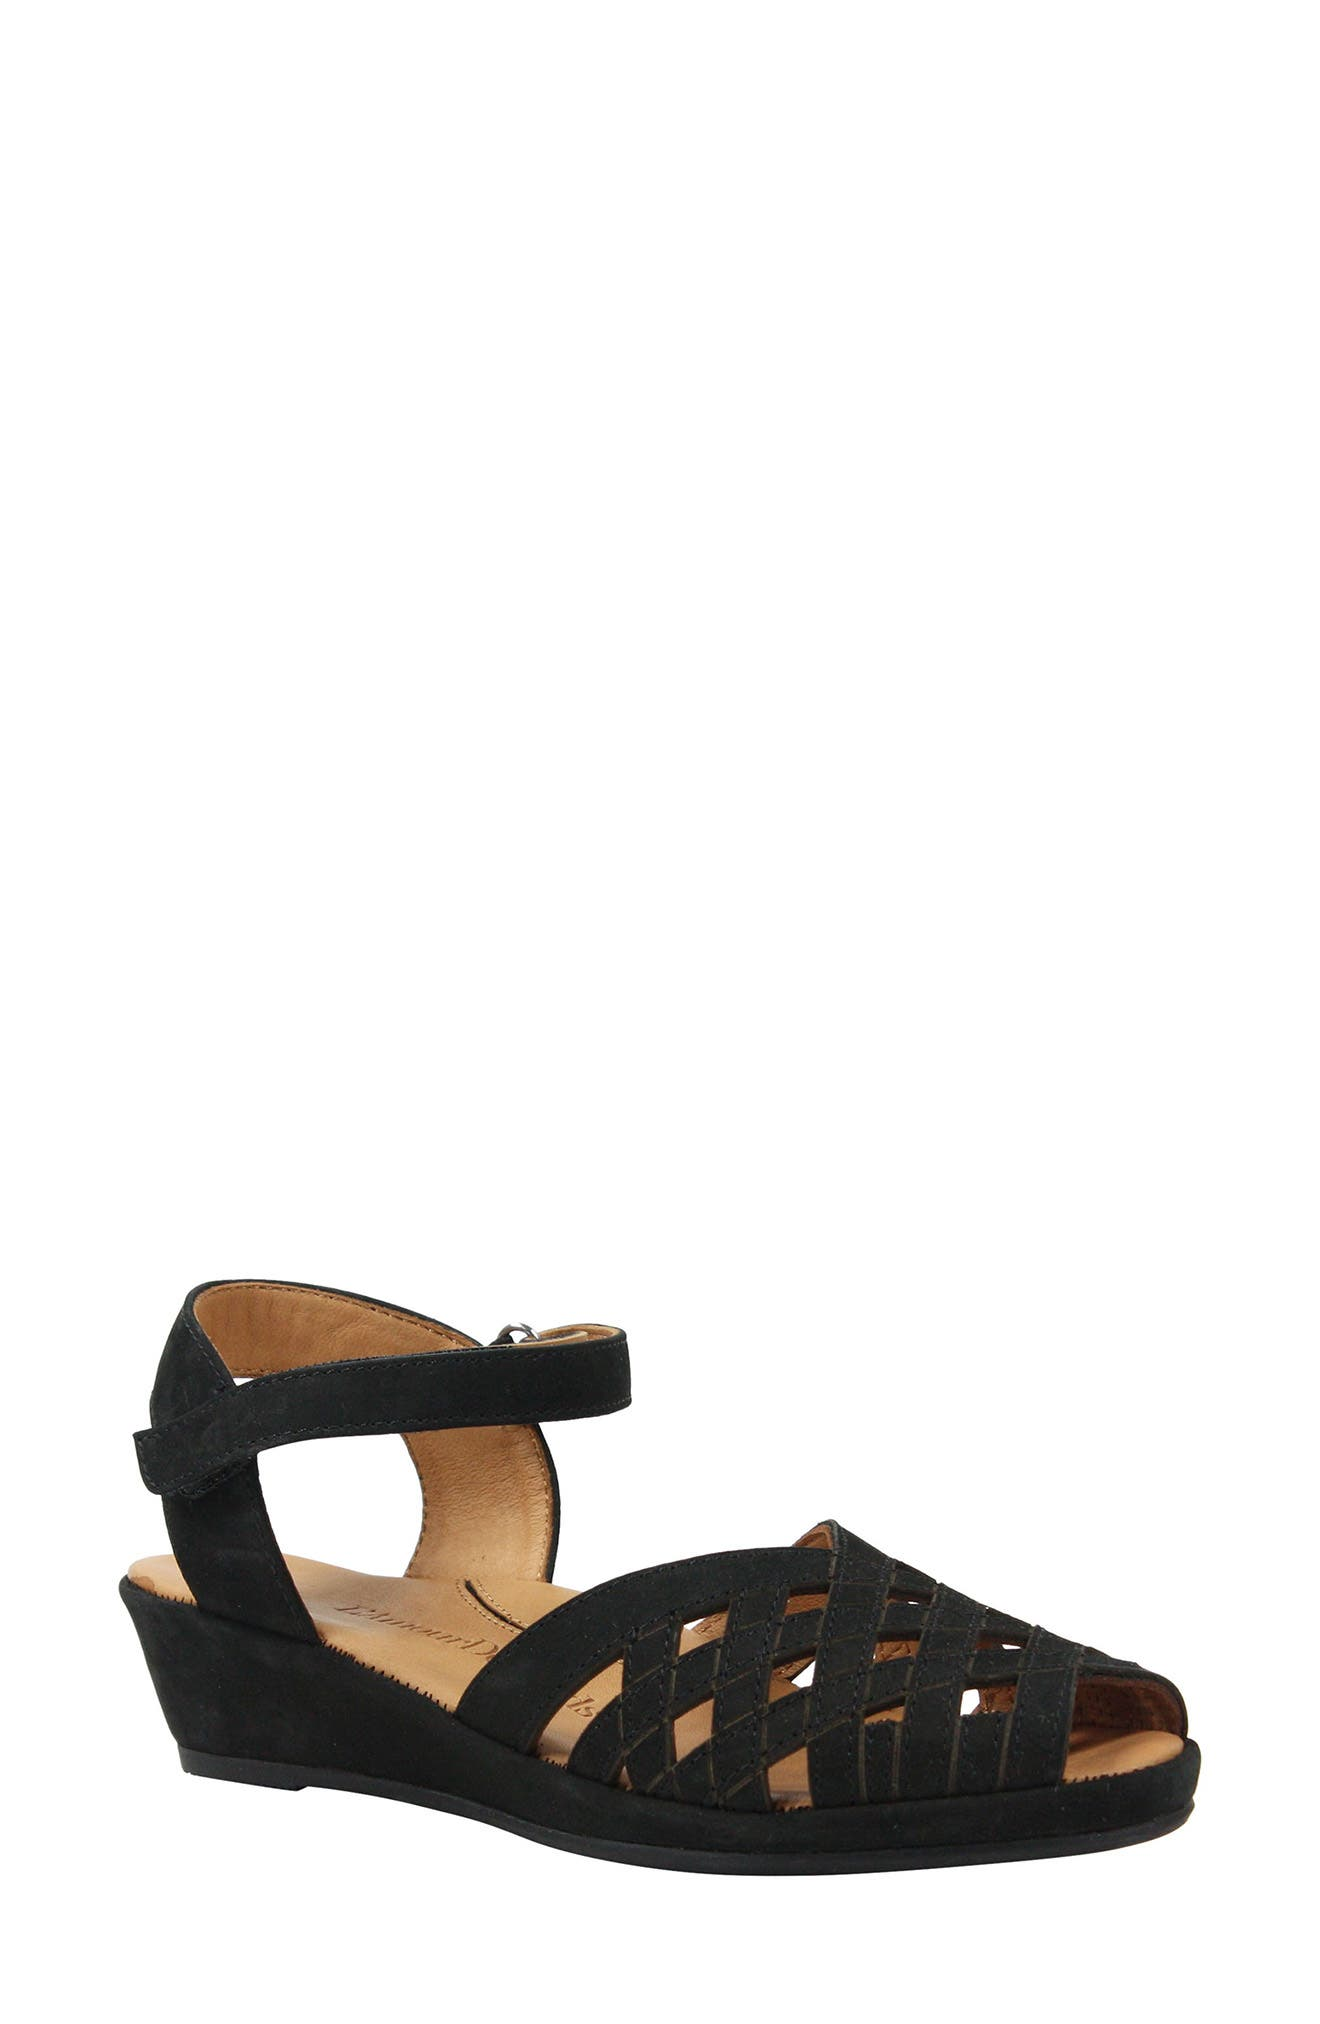 Burcie Wedge Sandal,                         Main,                         color, BLACK NUBUCK LEATHER